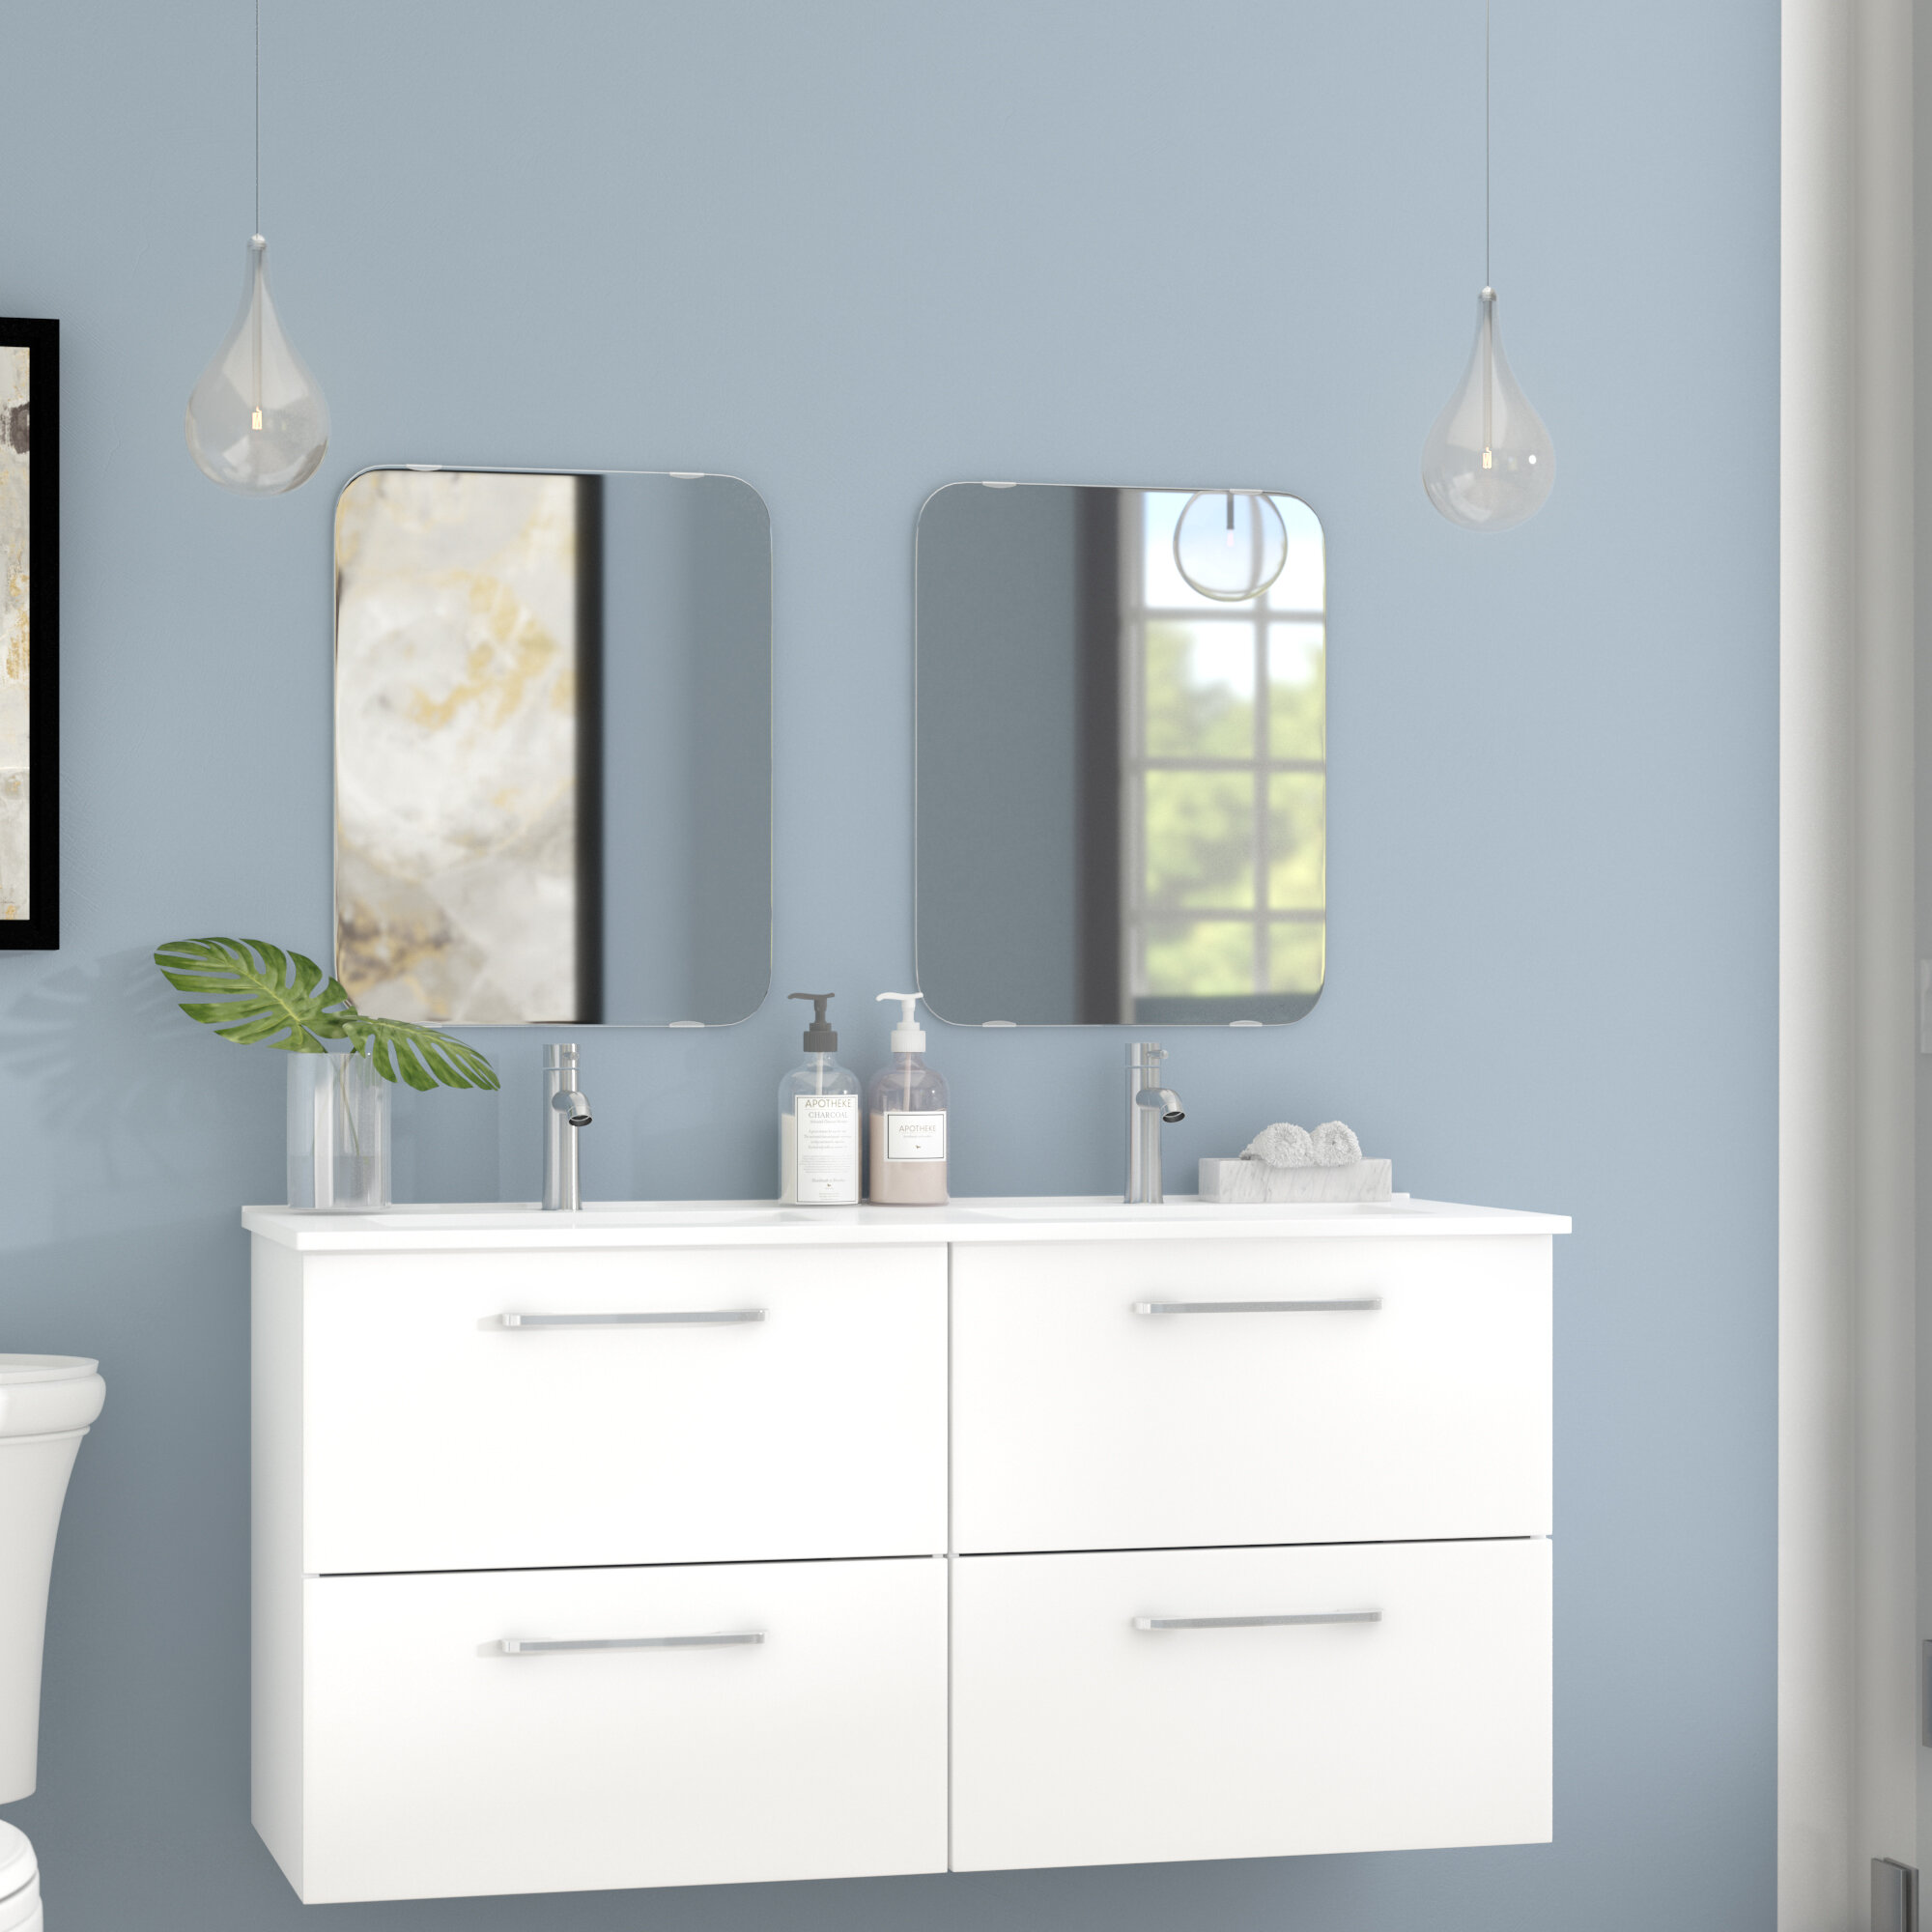 Orren Ellis Iorio Modern 48 Wall Mounted Bathroom Vanity Set